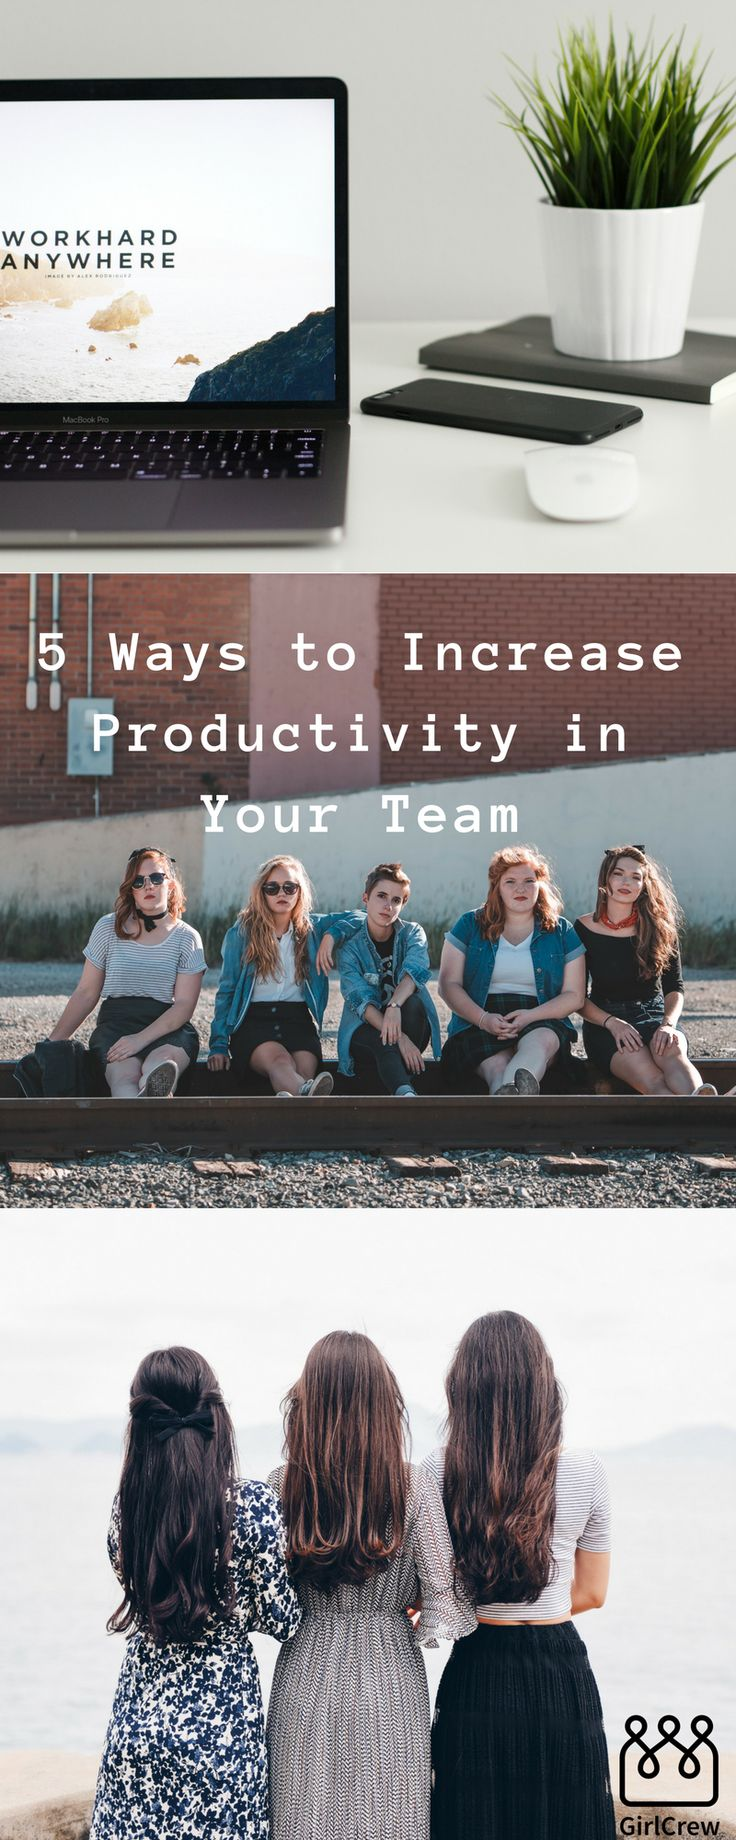 Managing people can be tough, keeping them motivated can be even tougher. If you're noticing a slump how can you increase productivity in your team?